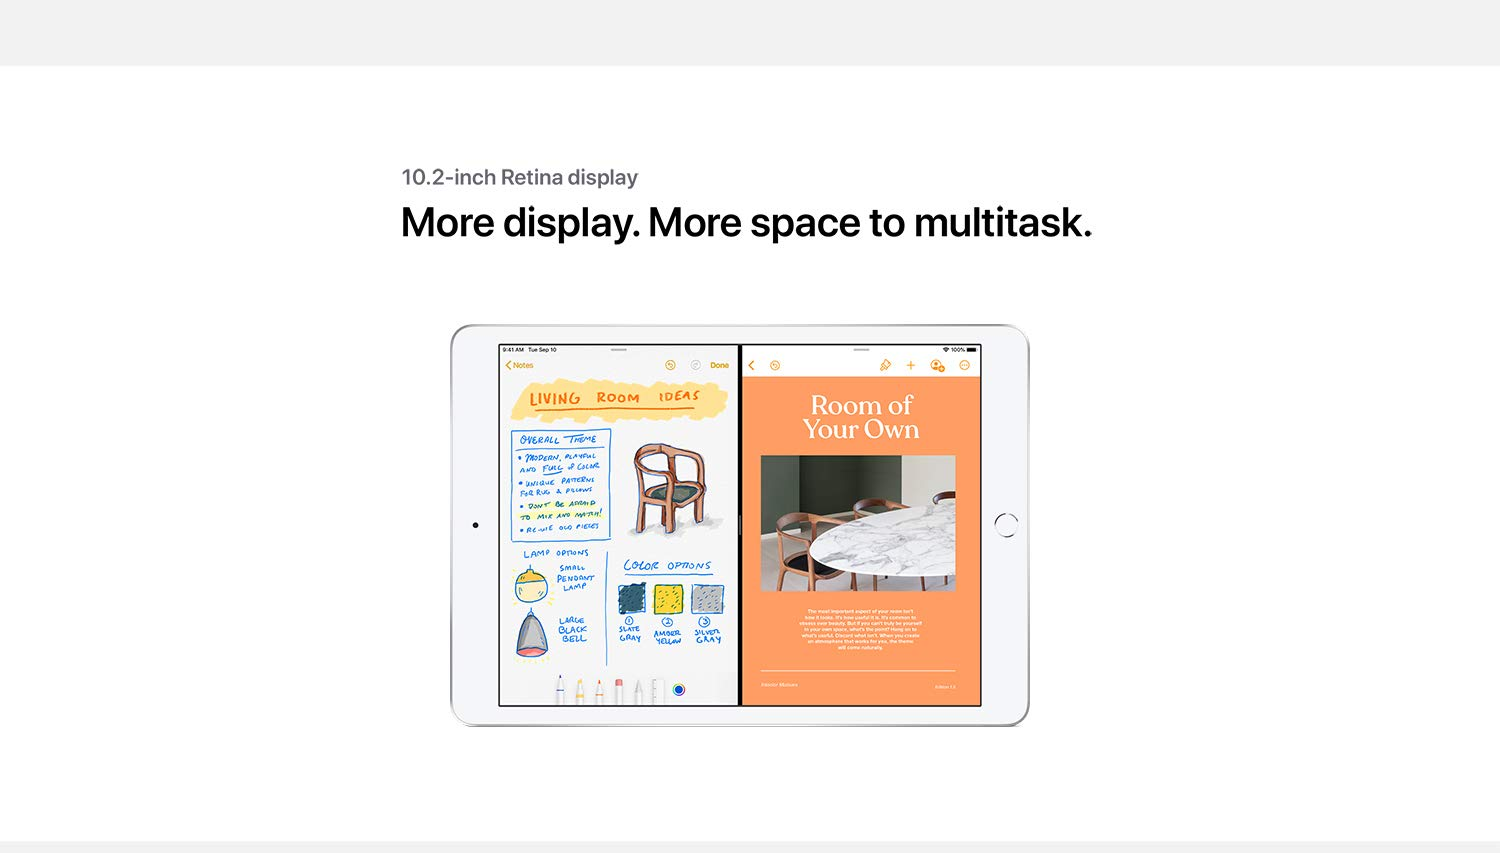 10.2-inch Retina display More display. More space to multitask.